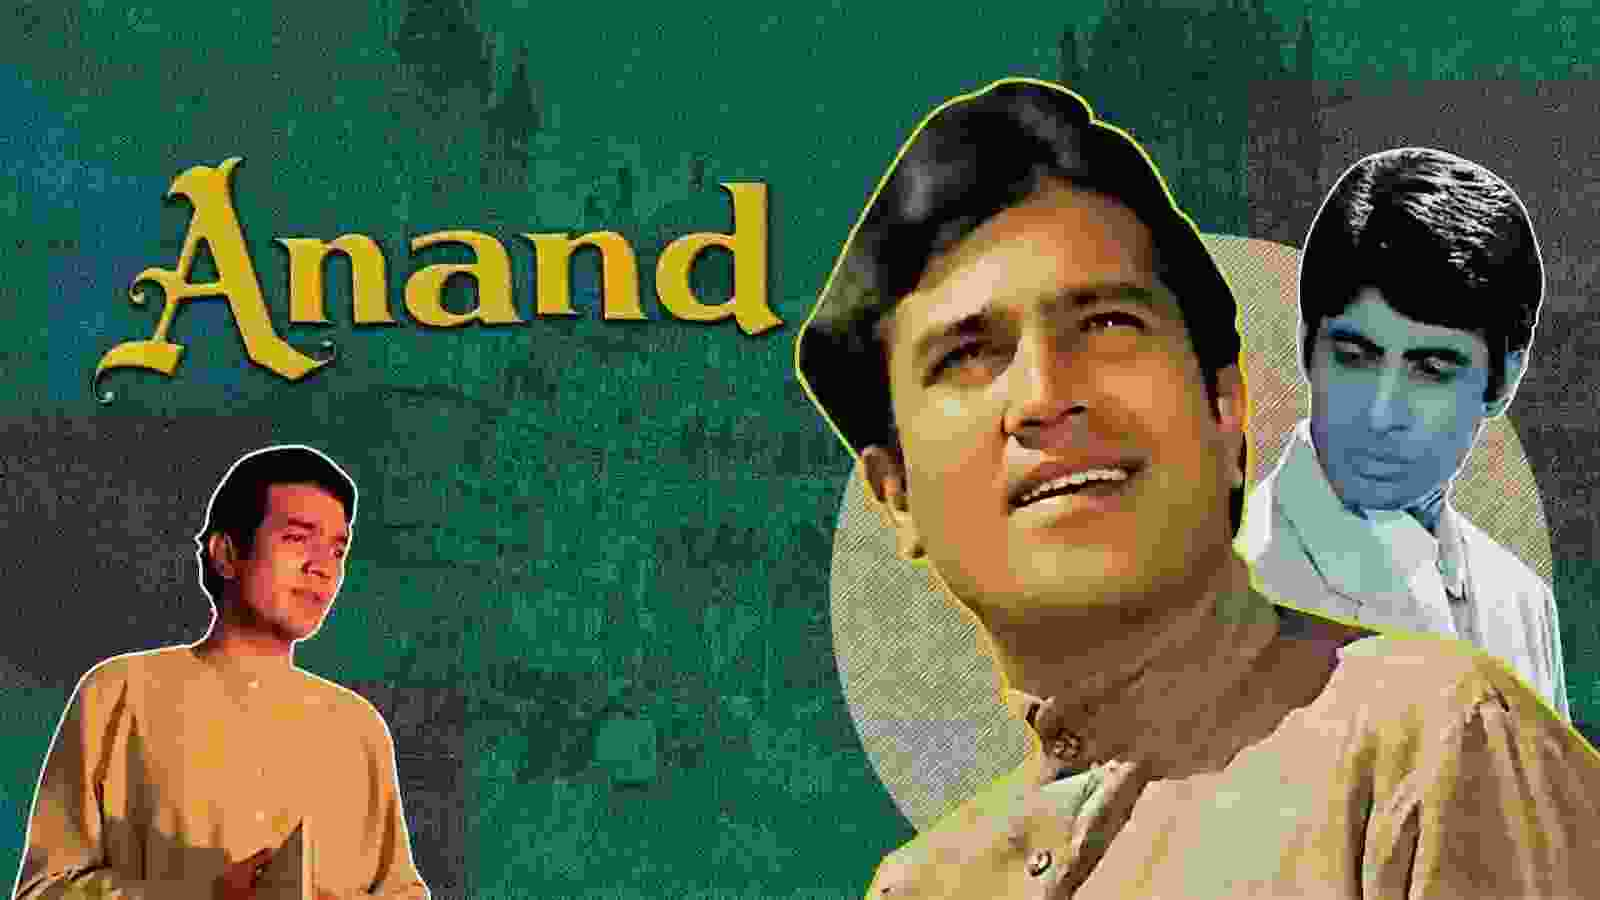 anand, motivational film on happiness, inspirational movie on happiness, movie on happiness in hindi, best inspirational movies, inspirational movies in hindi, motivational movies bollywood